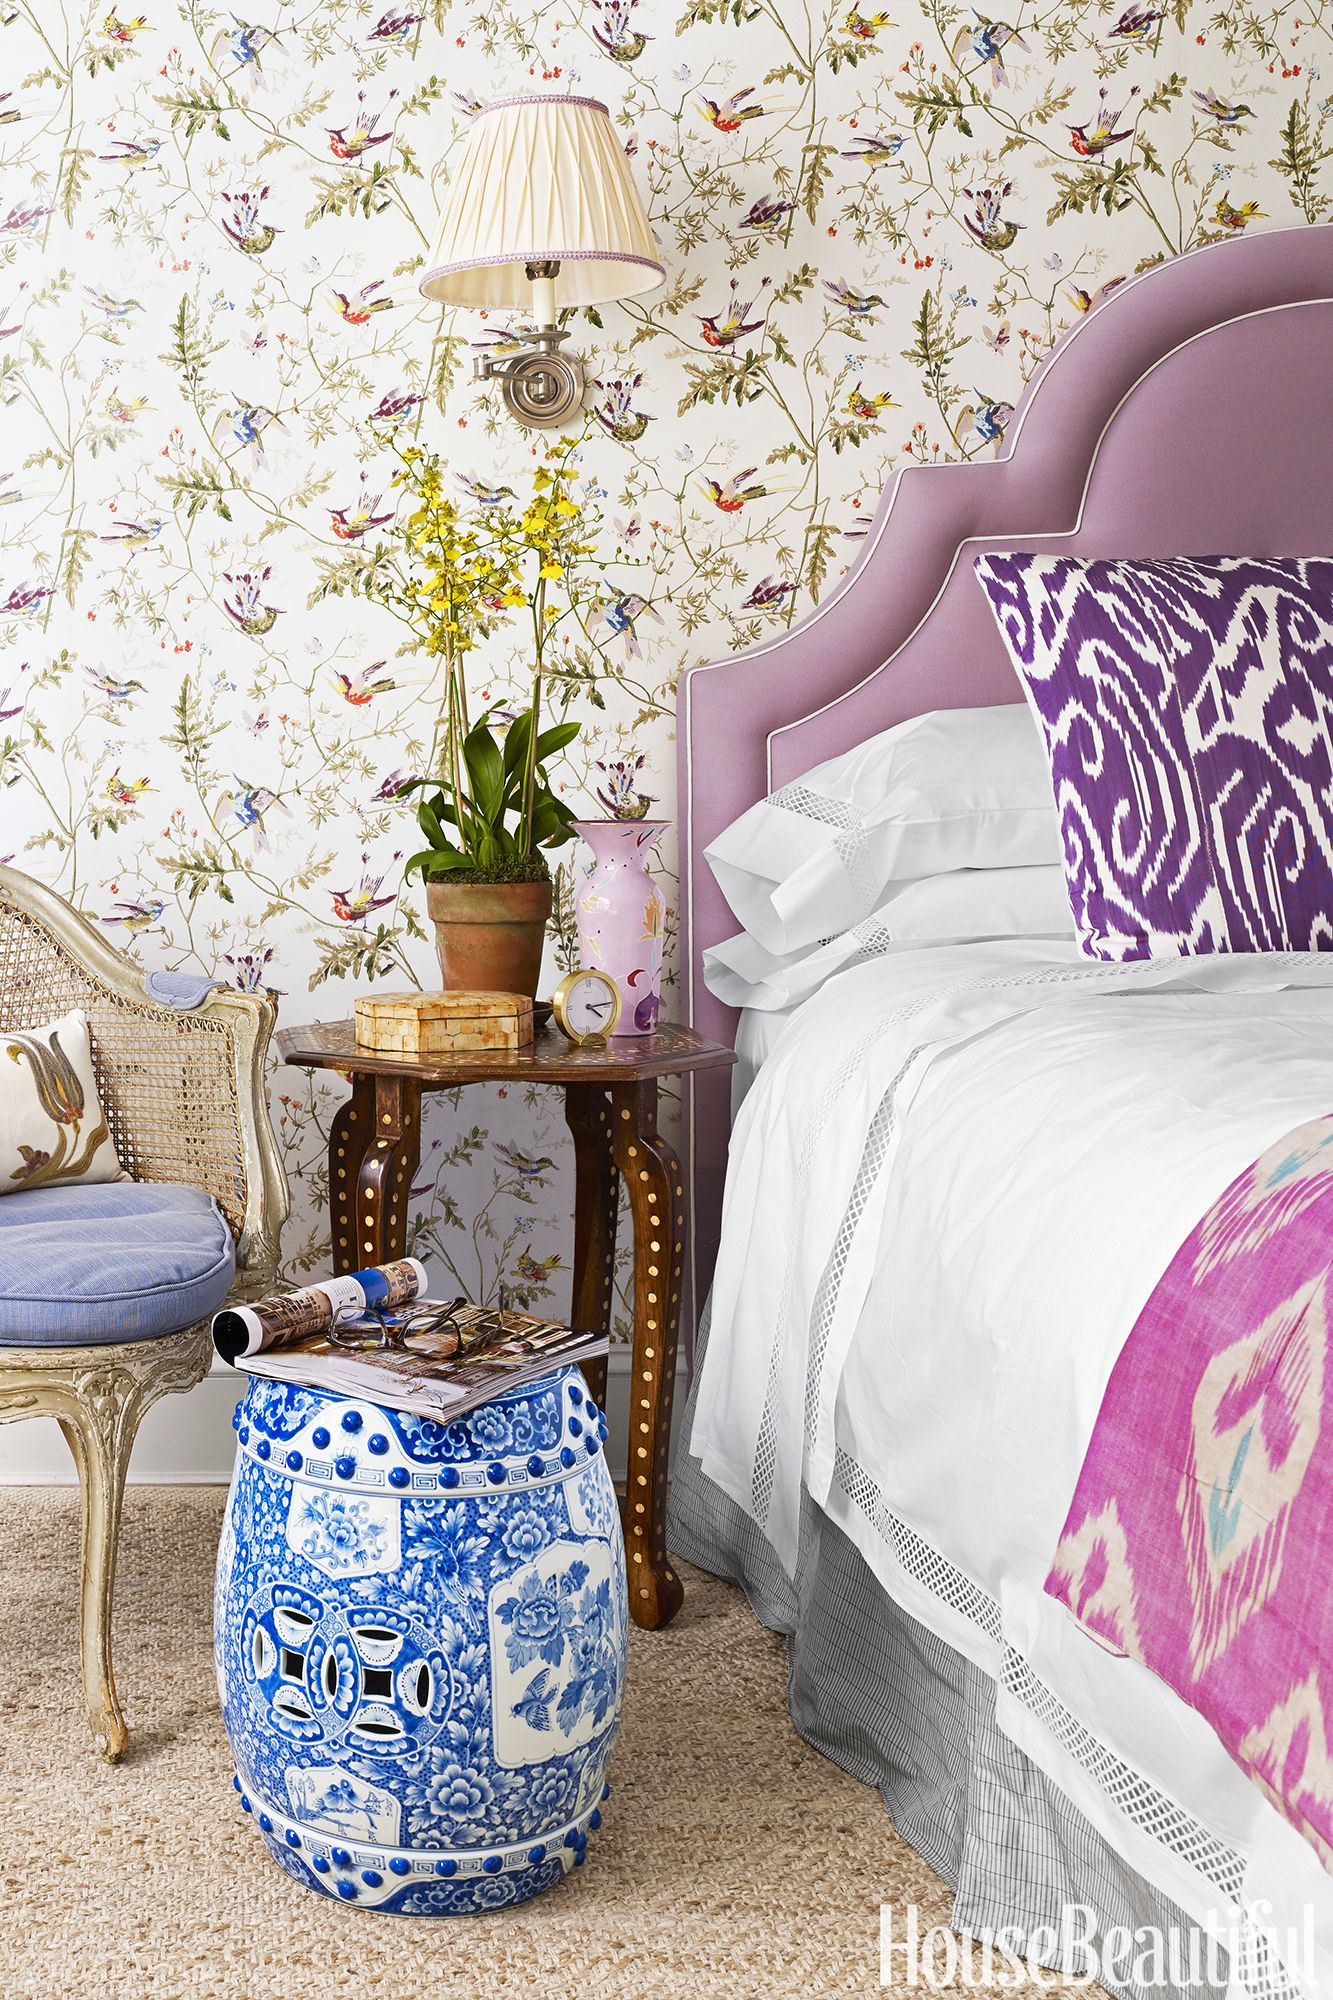 10 Purple Bedroom Ideas - Lavender and Lilac Bedroom Decor Ideas